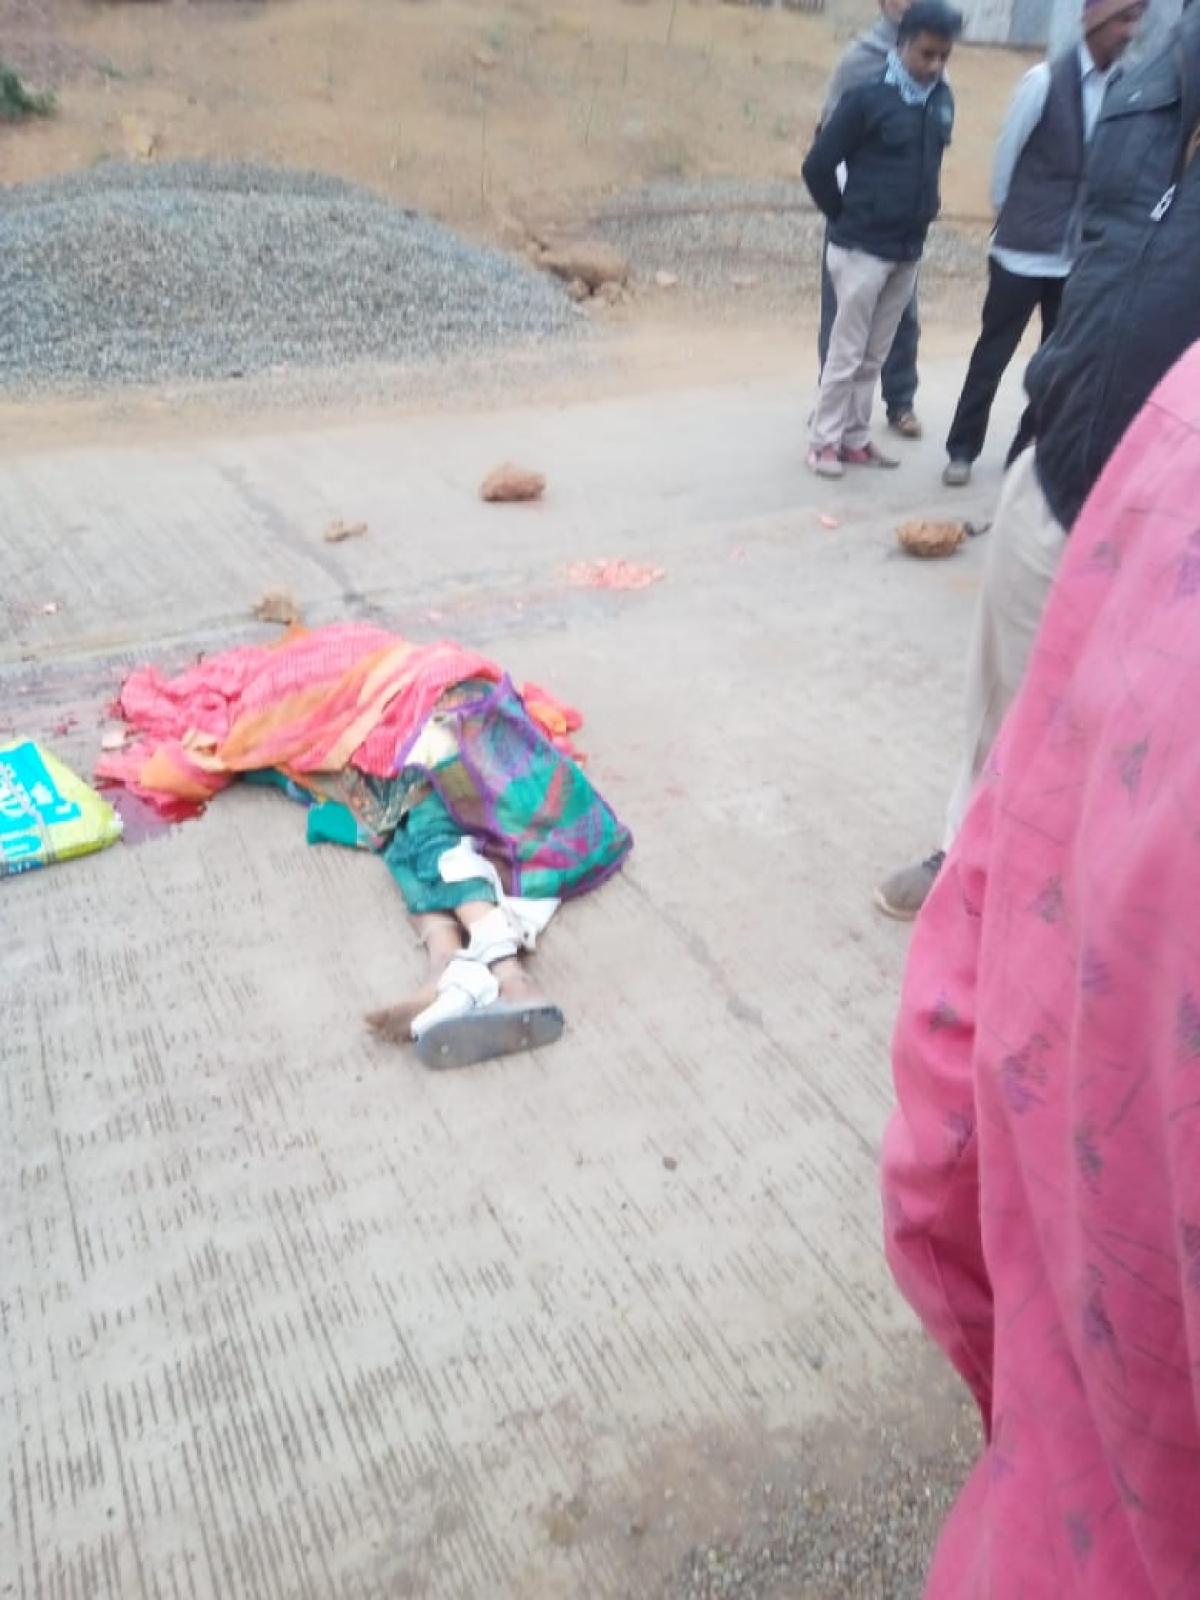 Woman labourer crushed to death by dumper at work site in Garoth on Sunday evening